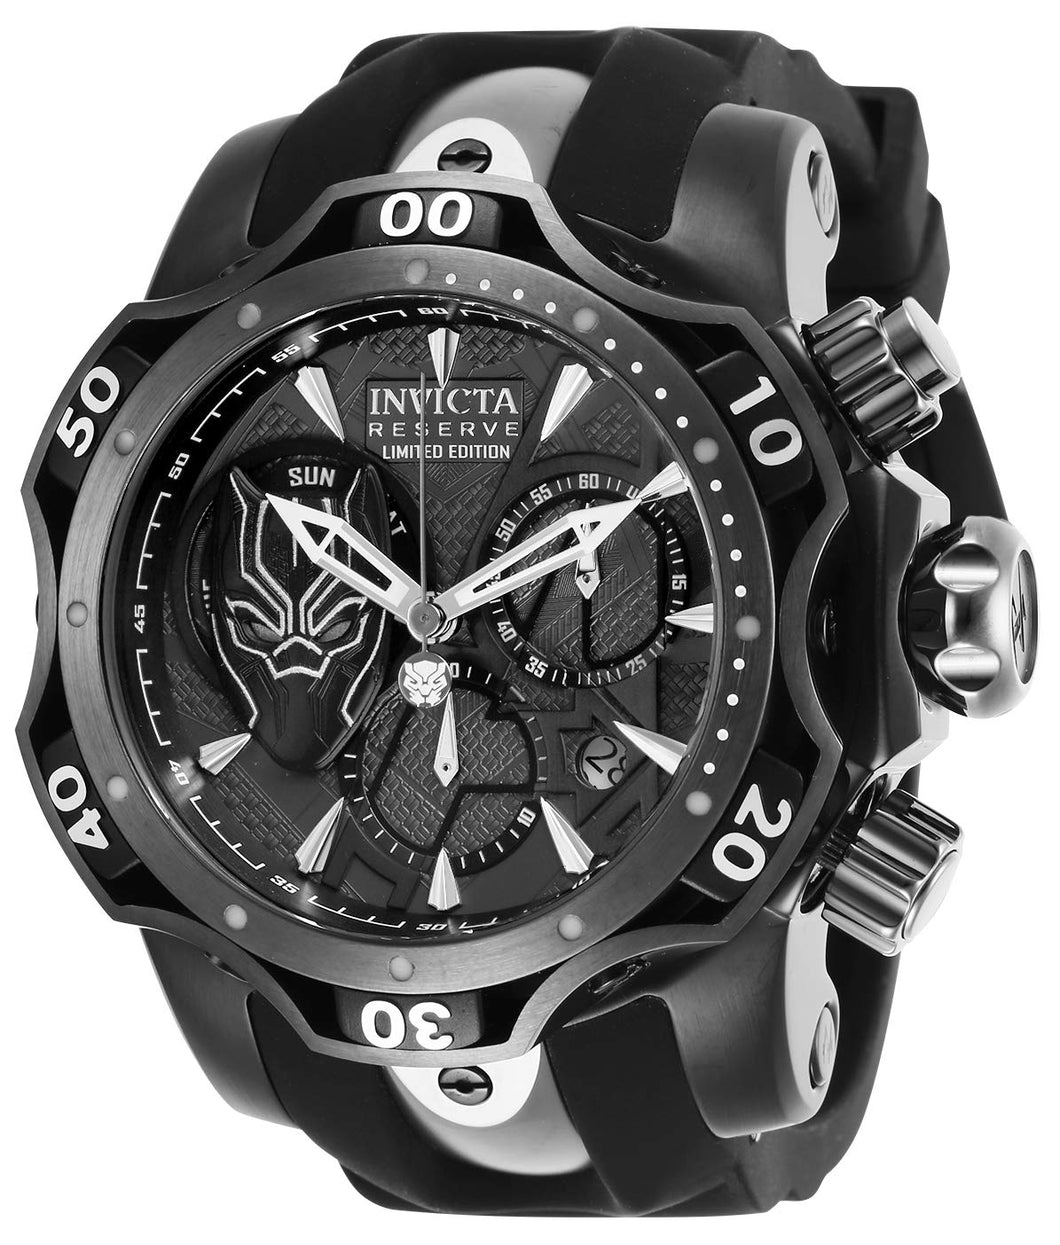 Invicta Men's Marvel Stainless Steel Quartz Watch with Silicone Strap, Black, 26 (Model: 27038)